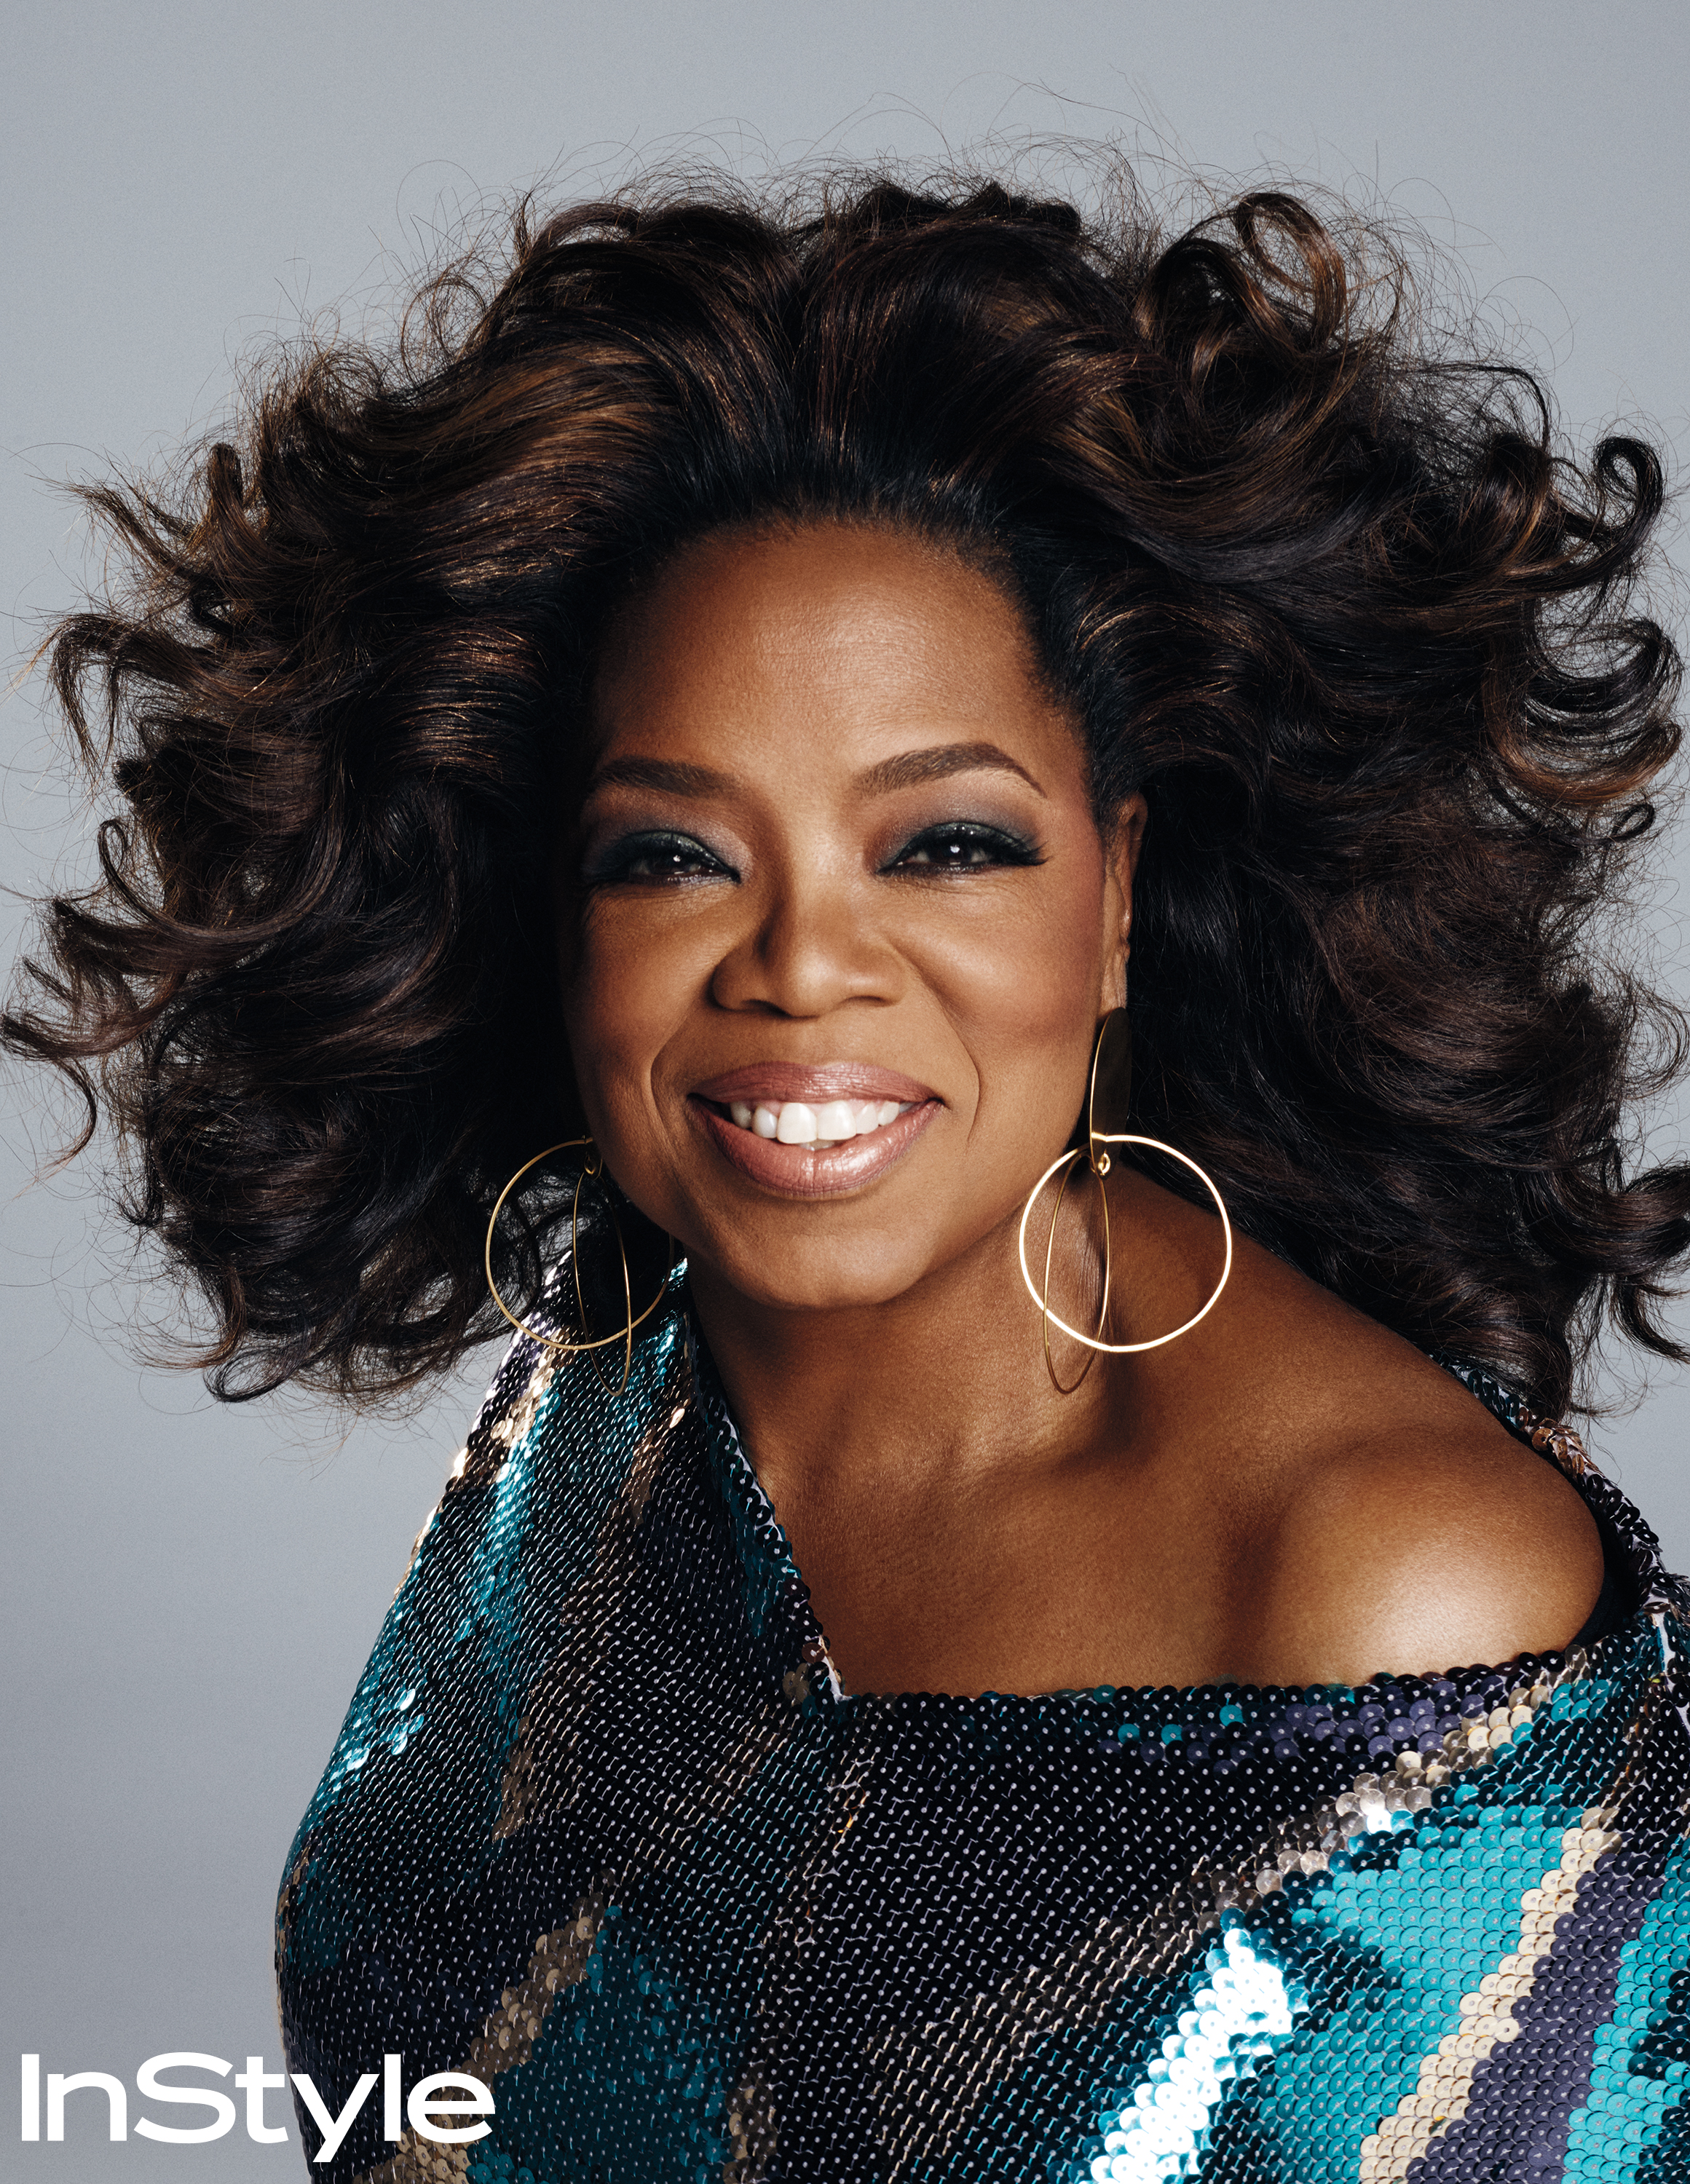 Oprah Winfrey Says These Jeans Make Her